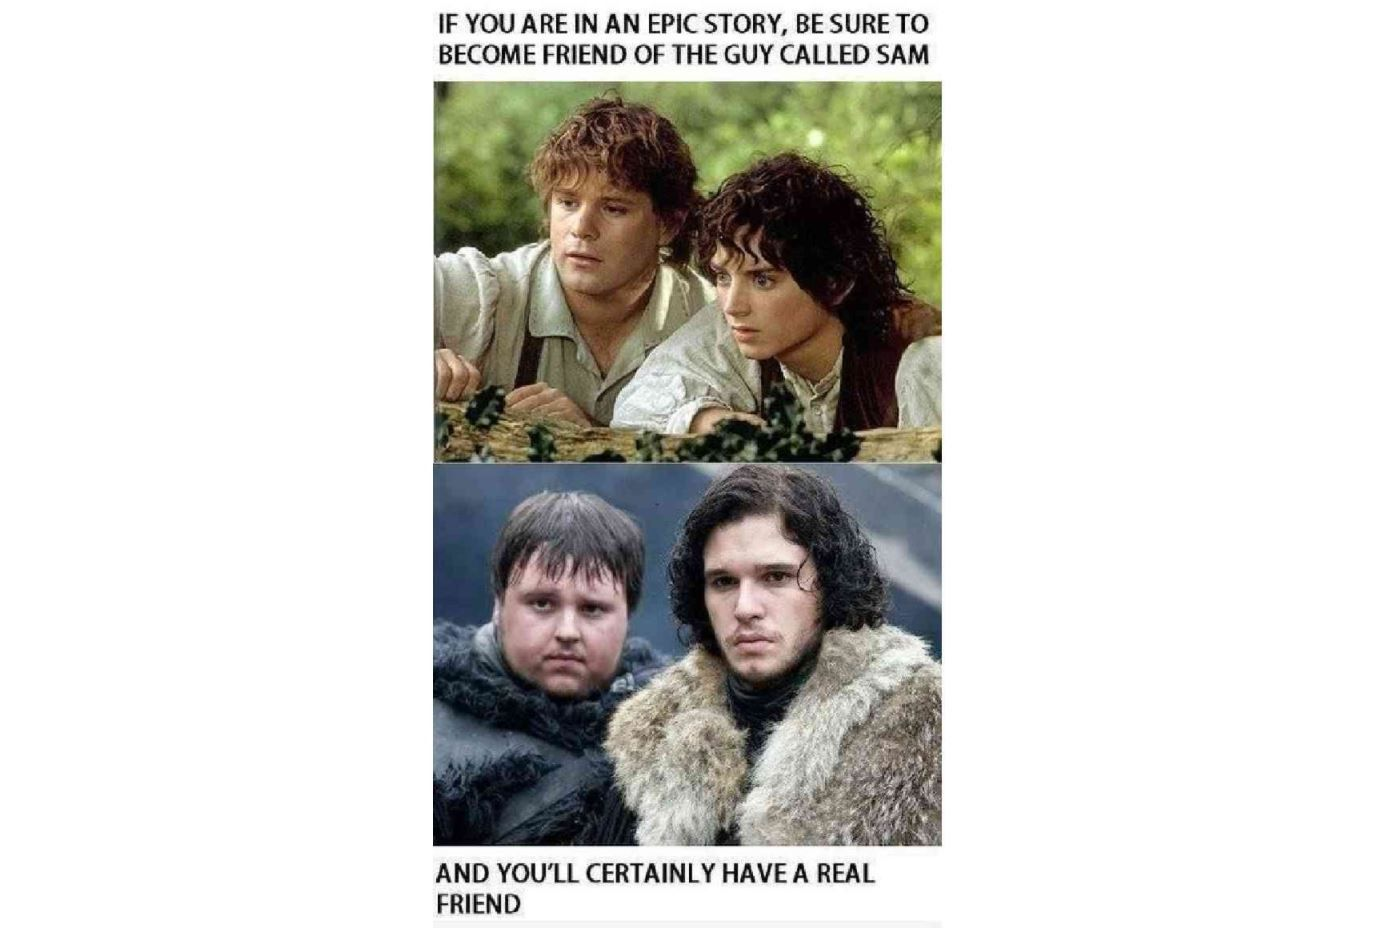 Sam game of thrones and lord of the rings meme